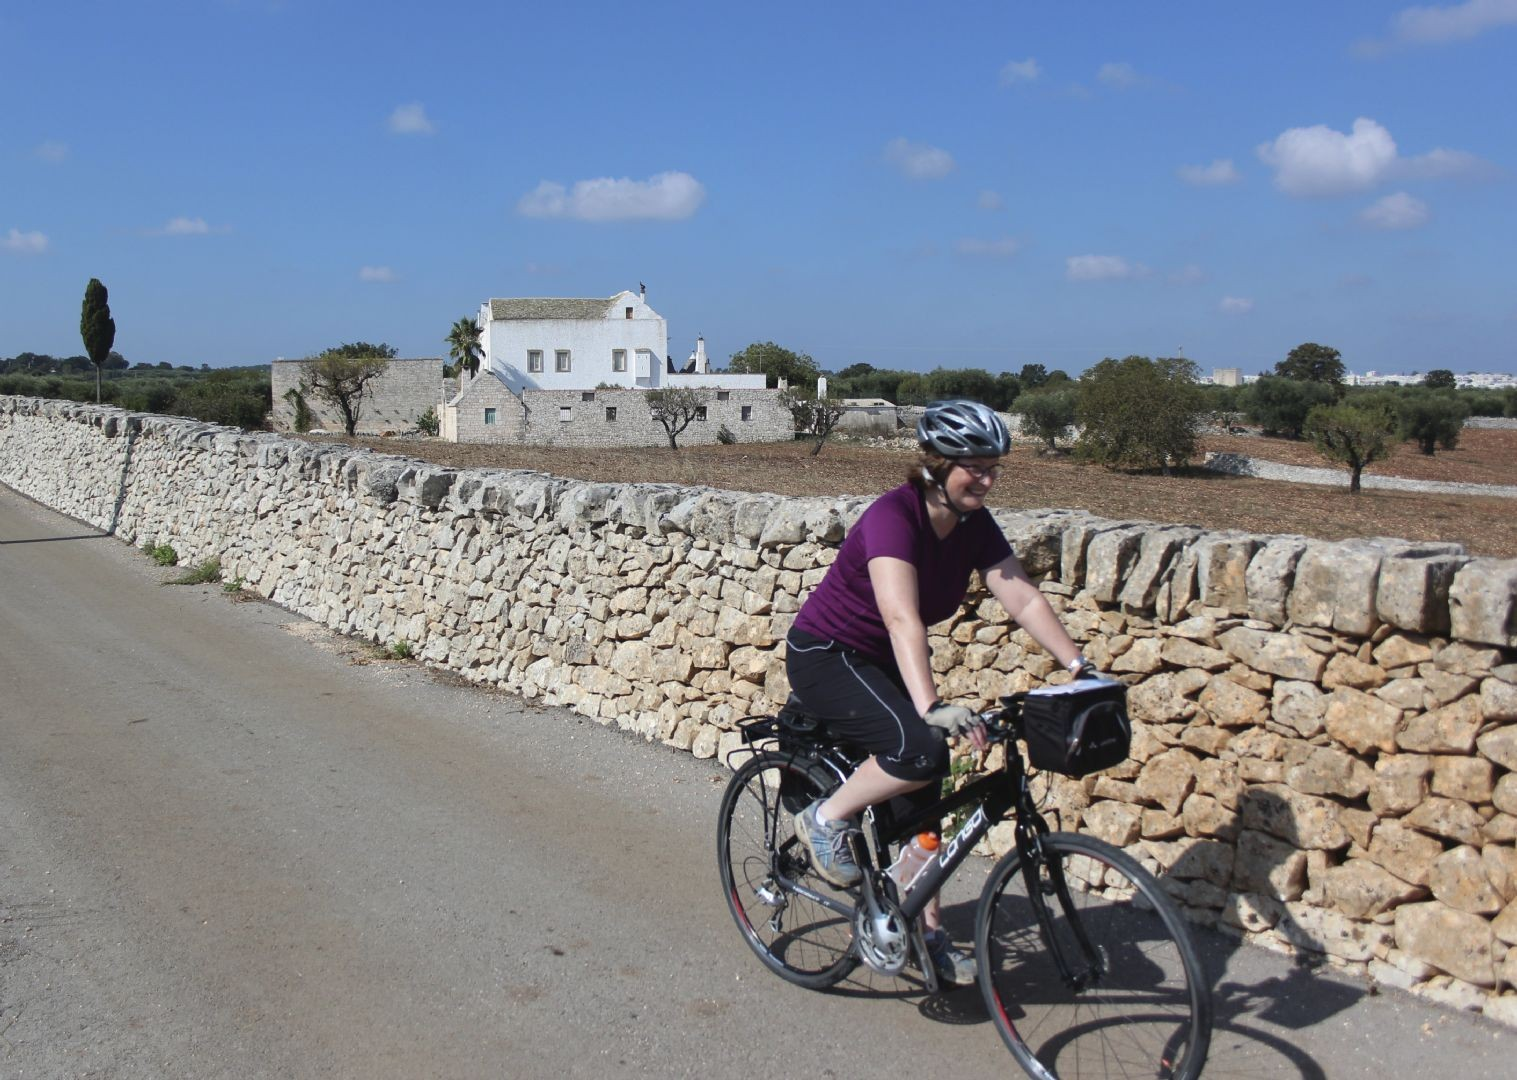 cycling-holiday-puglia-italy.jpg - Italy - Puglia - Italia Leisure and Family Cycling